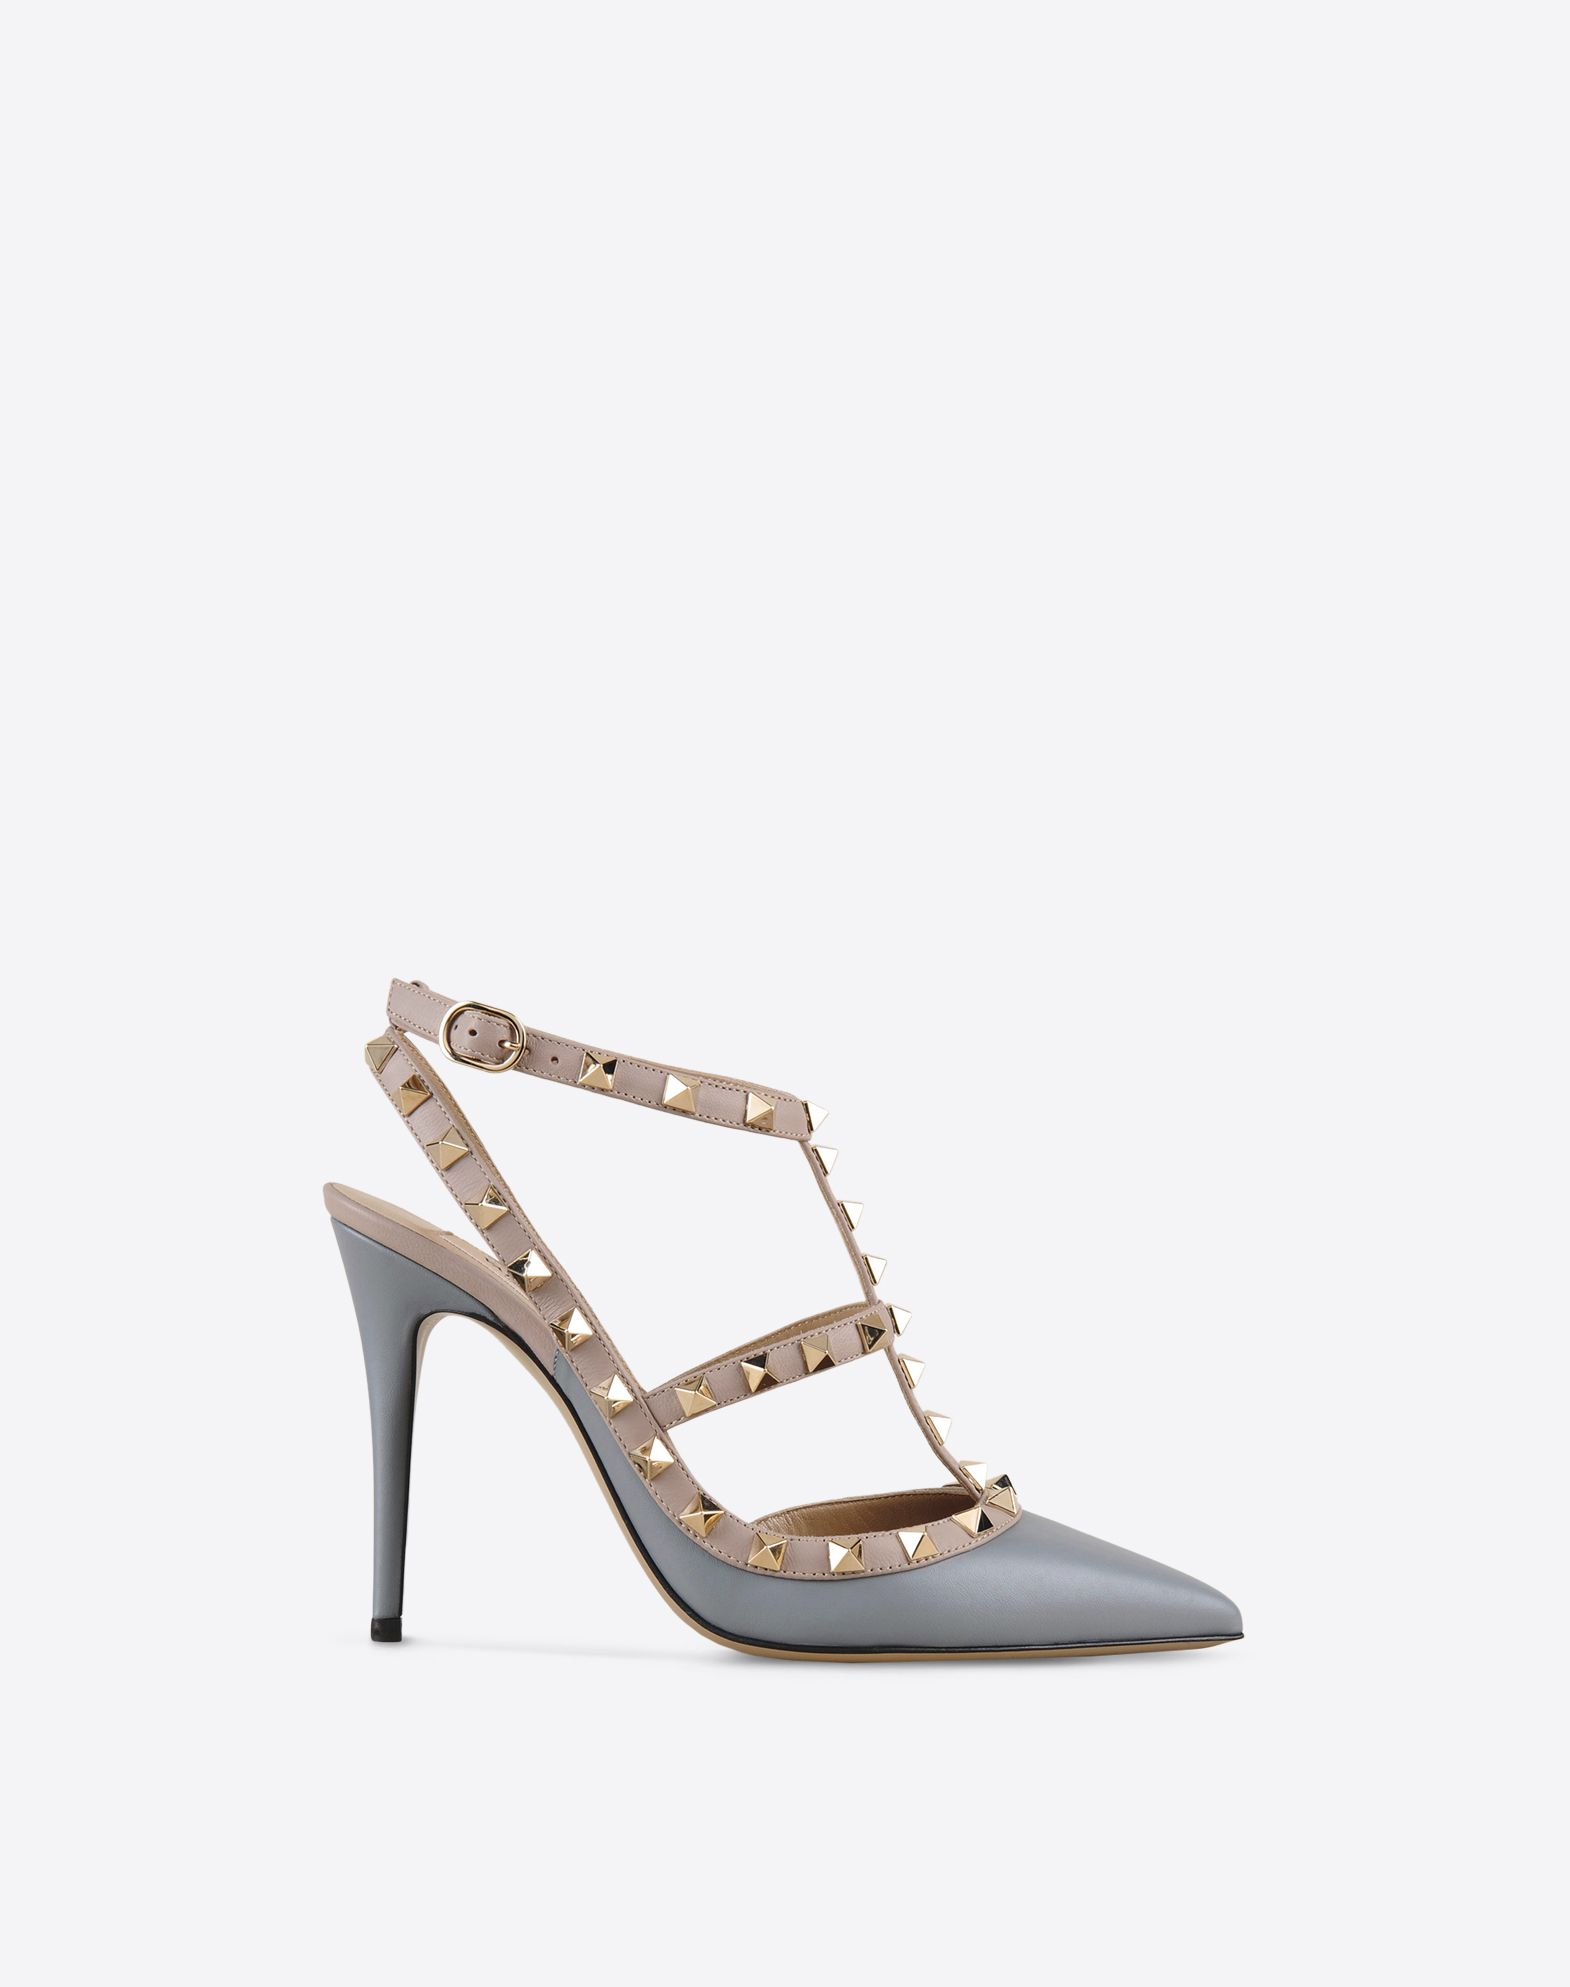 rock farfetch ca stud shopping valentino rockstud pump item women